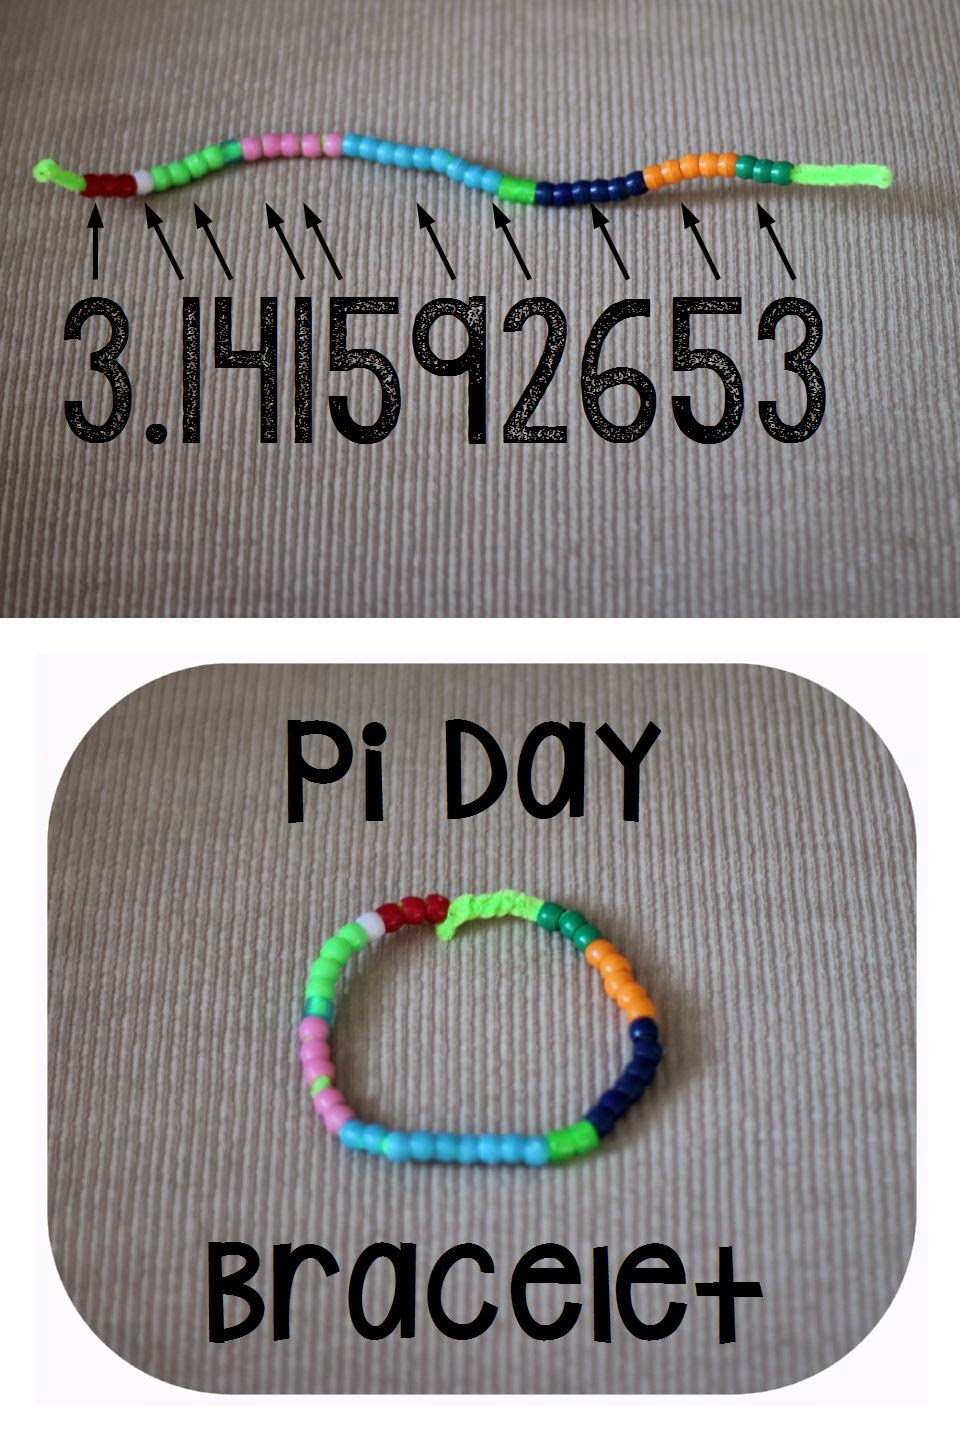 pi day - photo #16